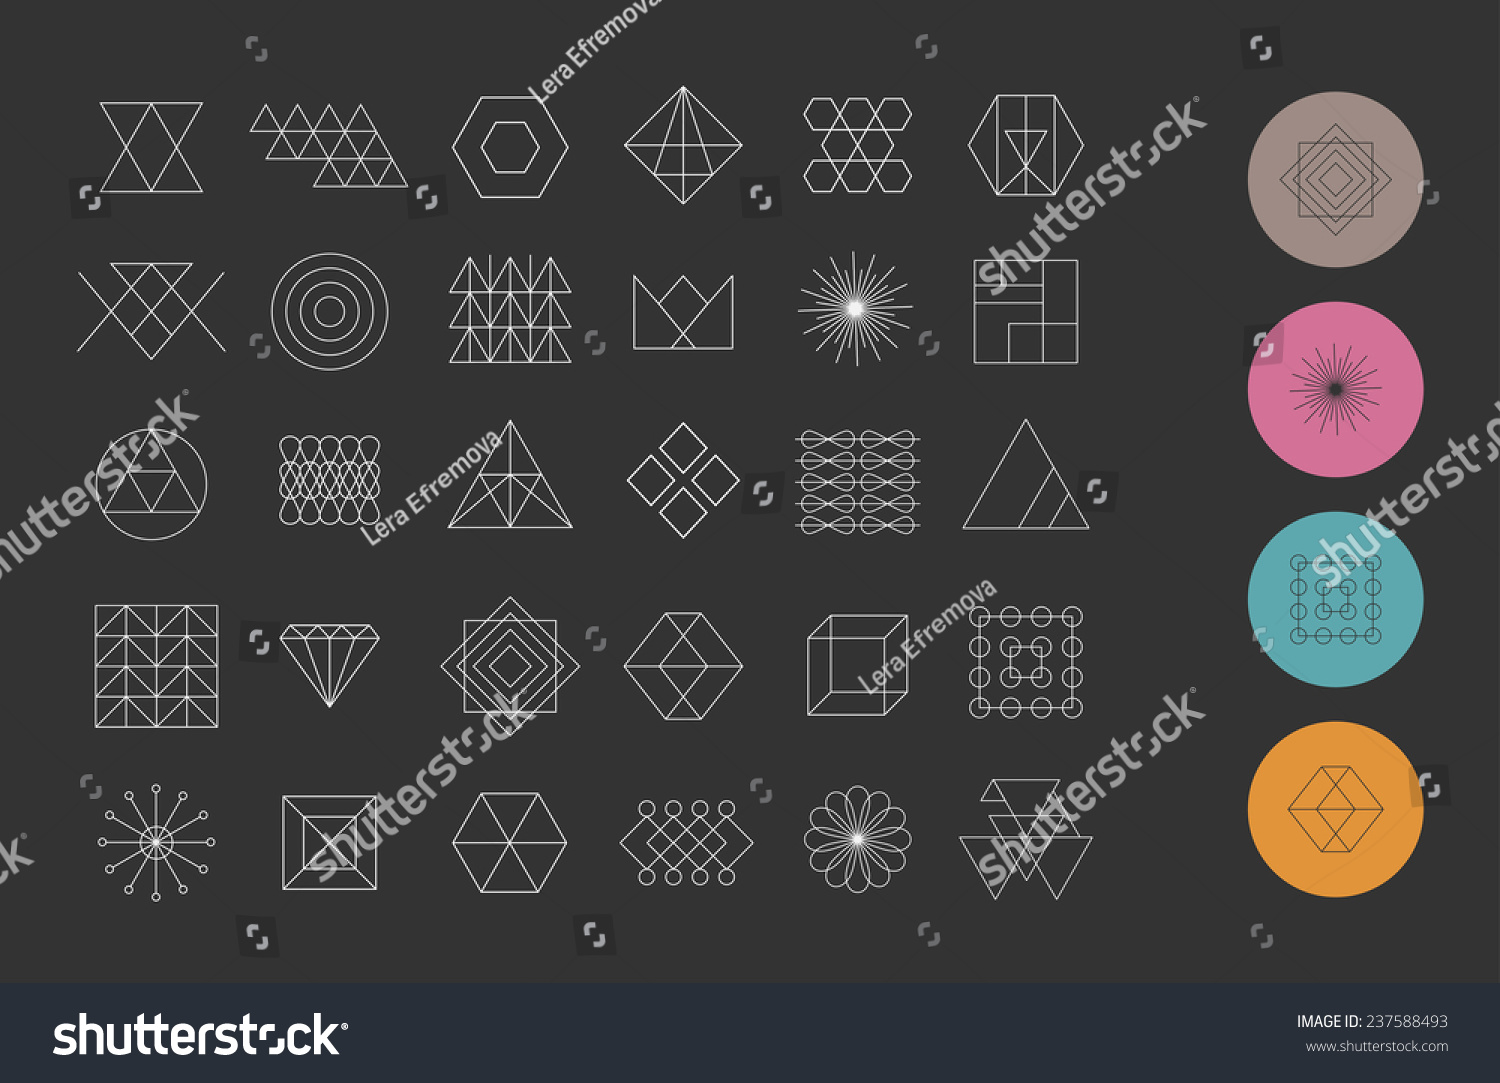 Usage of Geometric Shapes in Graphic Design  Articles